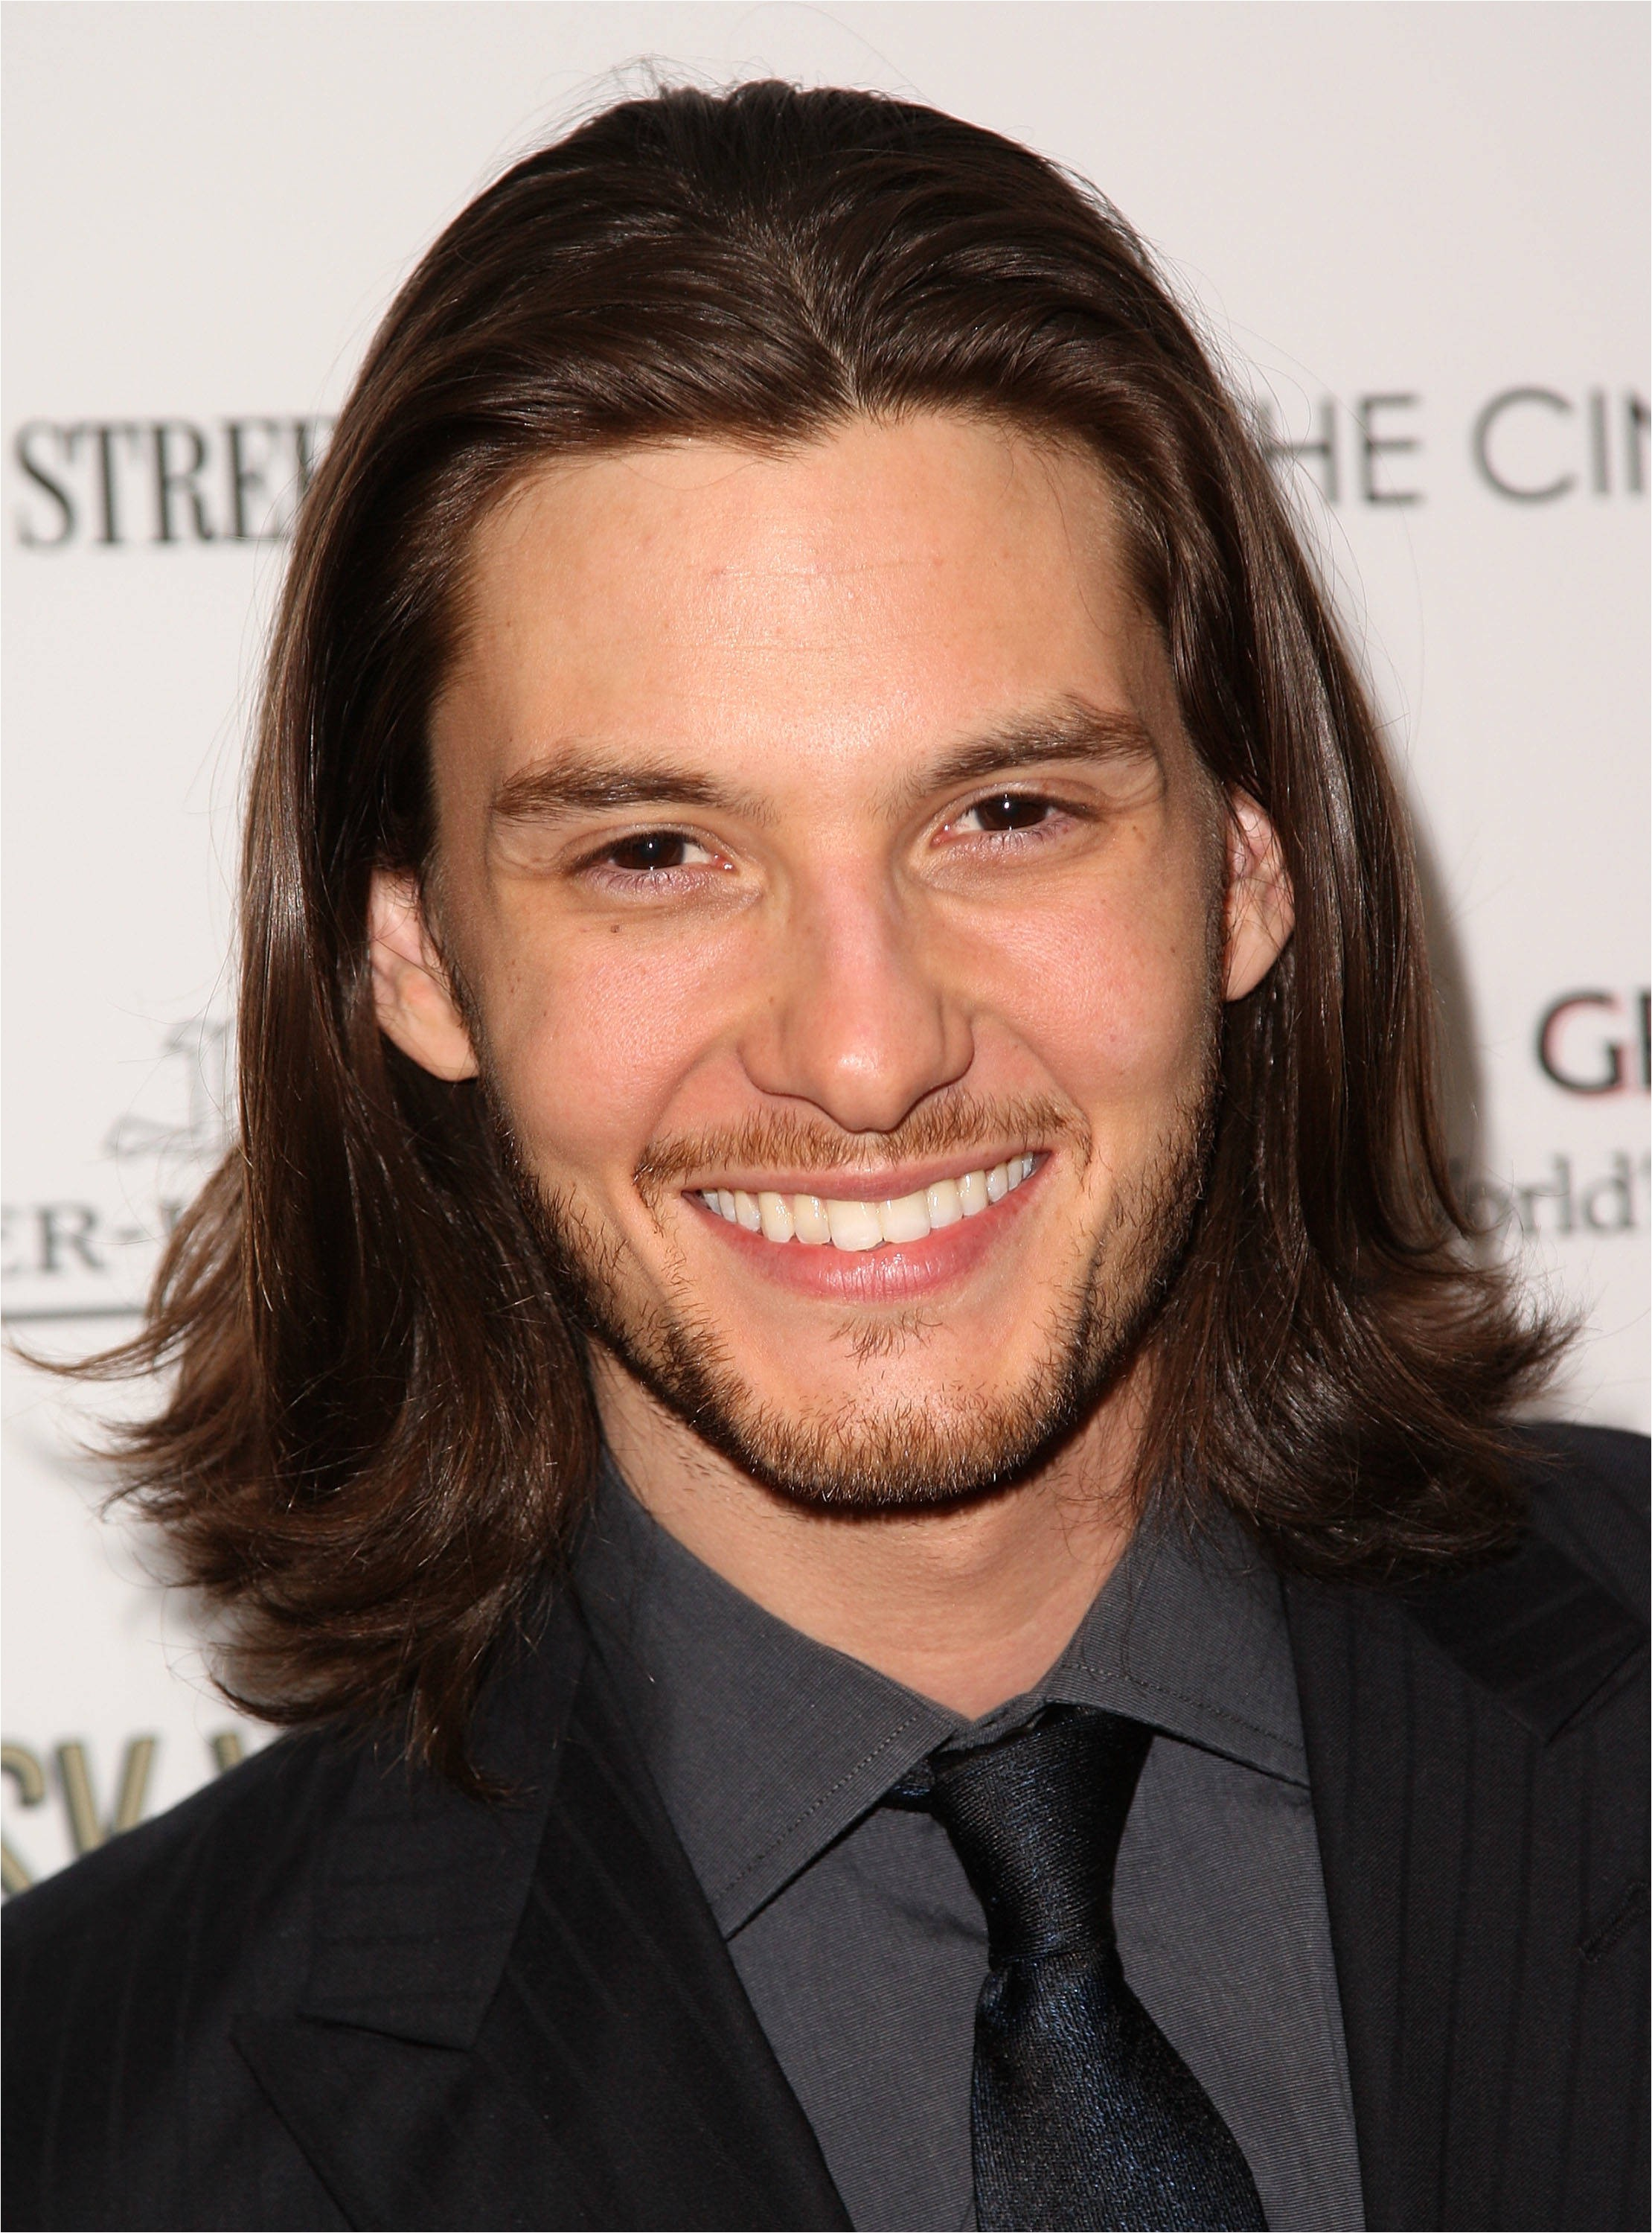 Long Hairstyle for Men 2014 Best Men's Hairstyles for Long Faces 2014